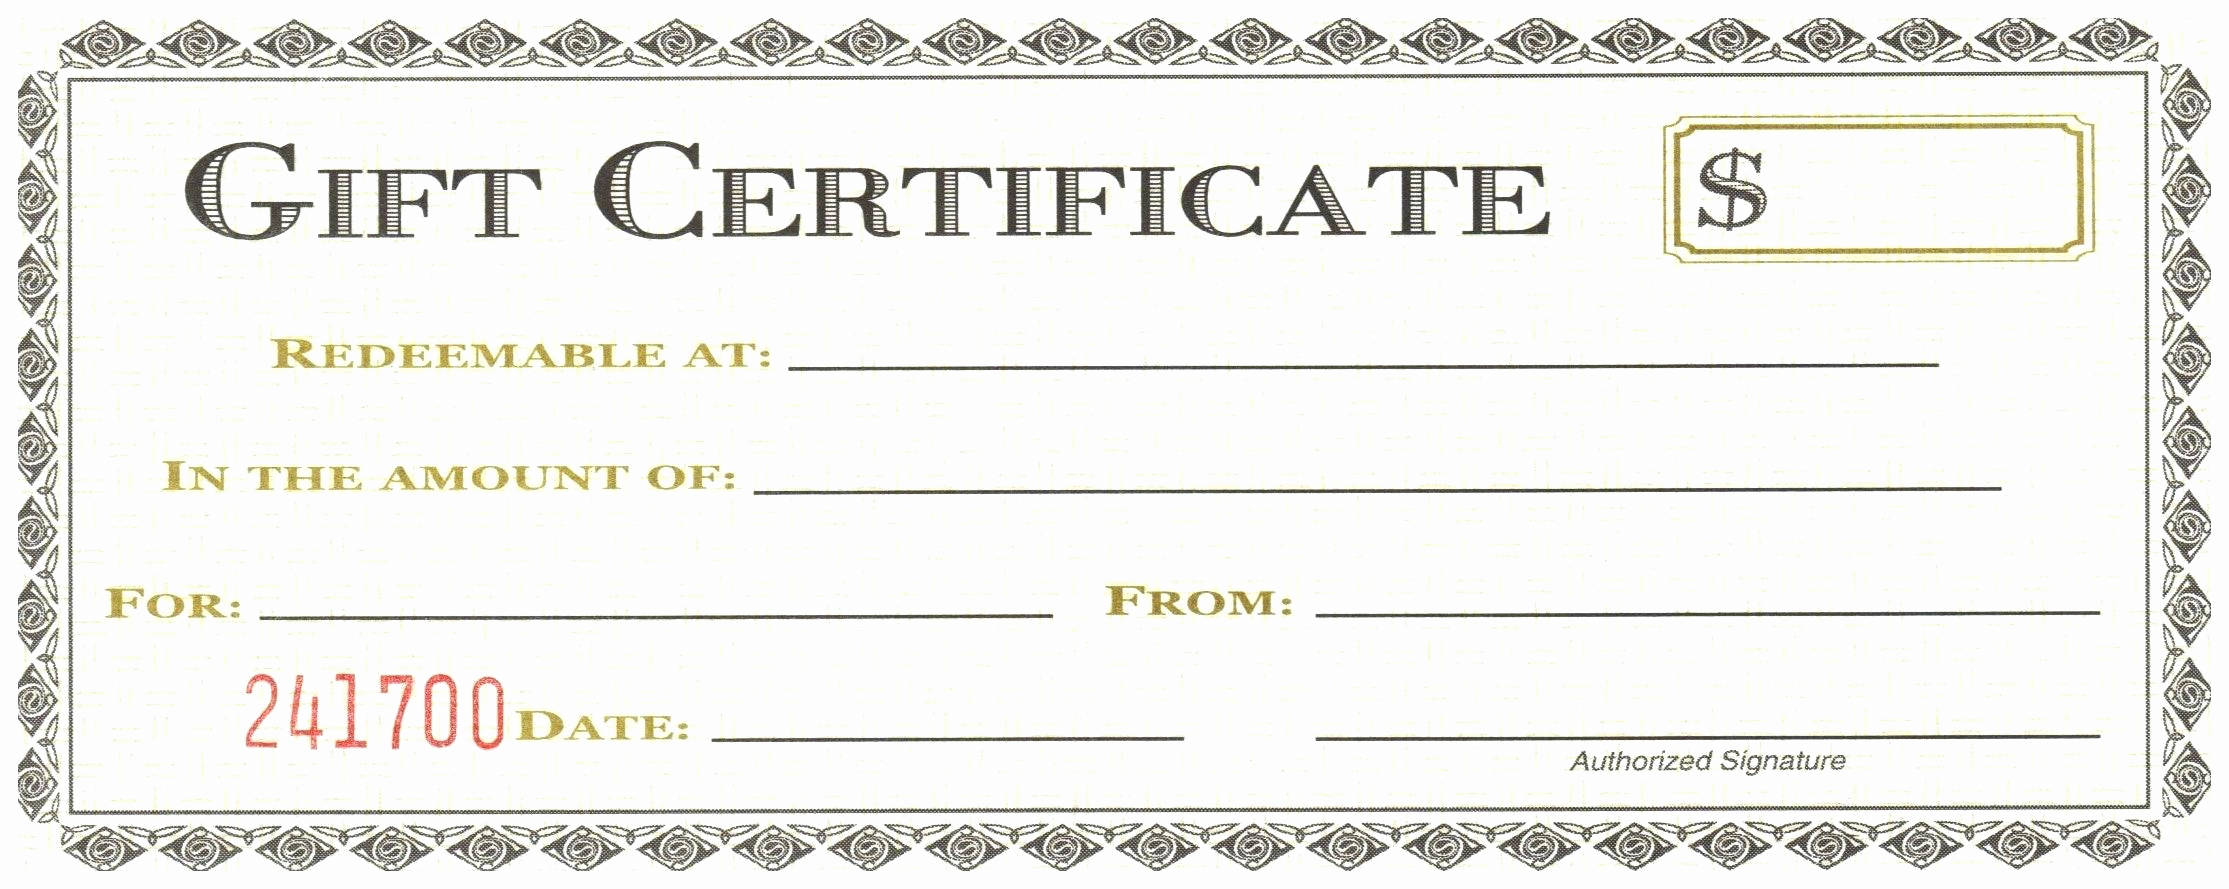 Free Printable Coupon Template Blank Unique Template Graphy Gift Certificate Template